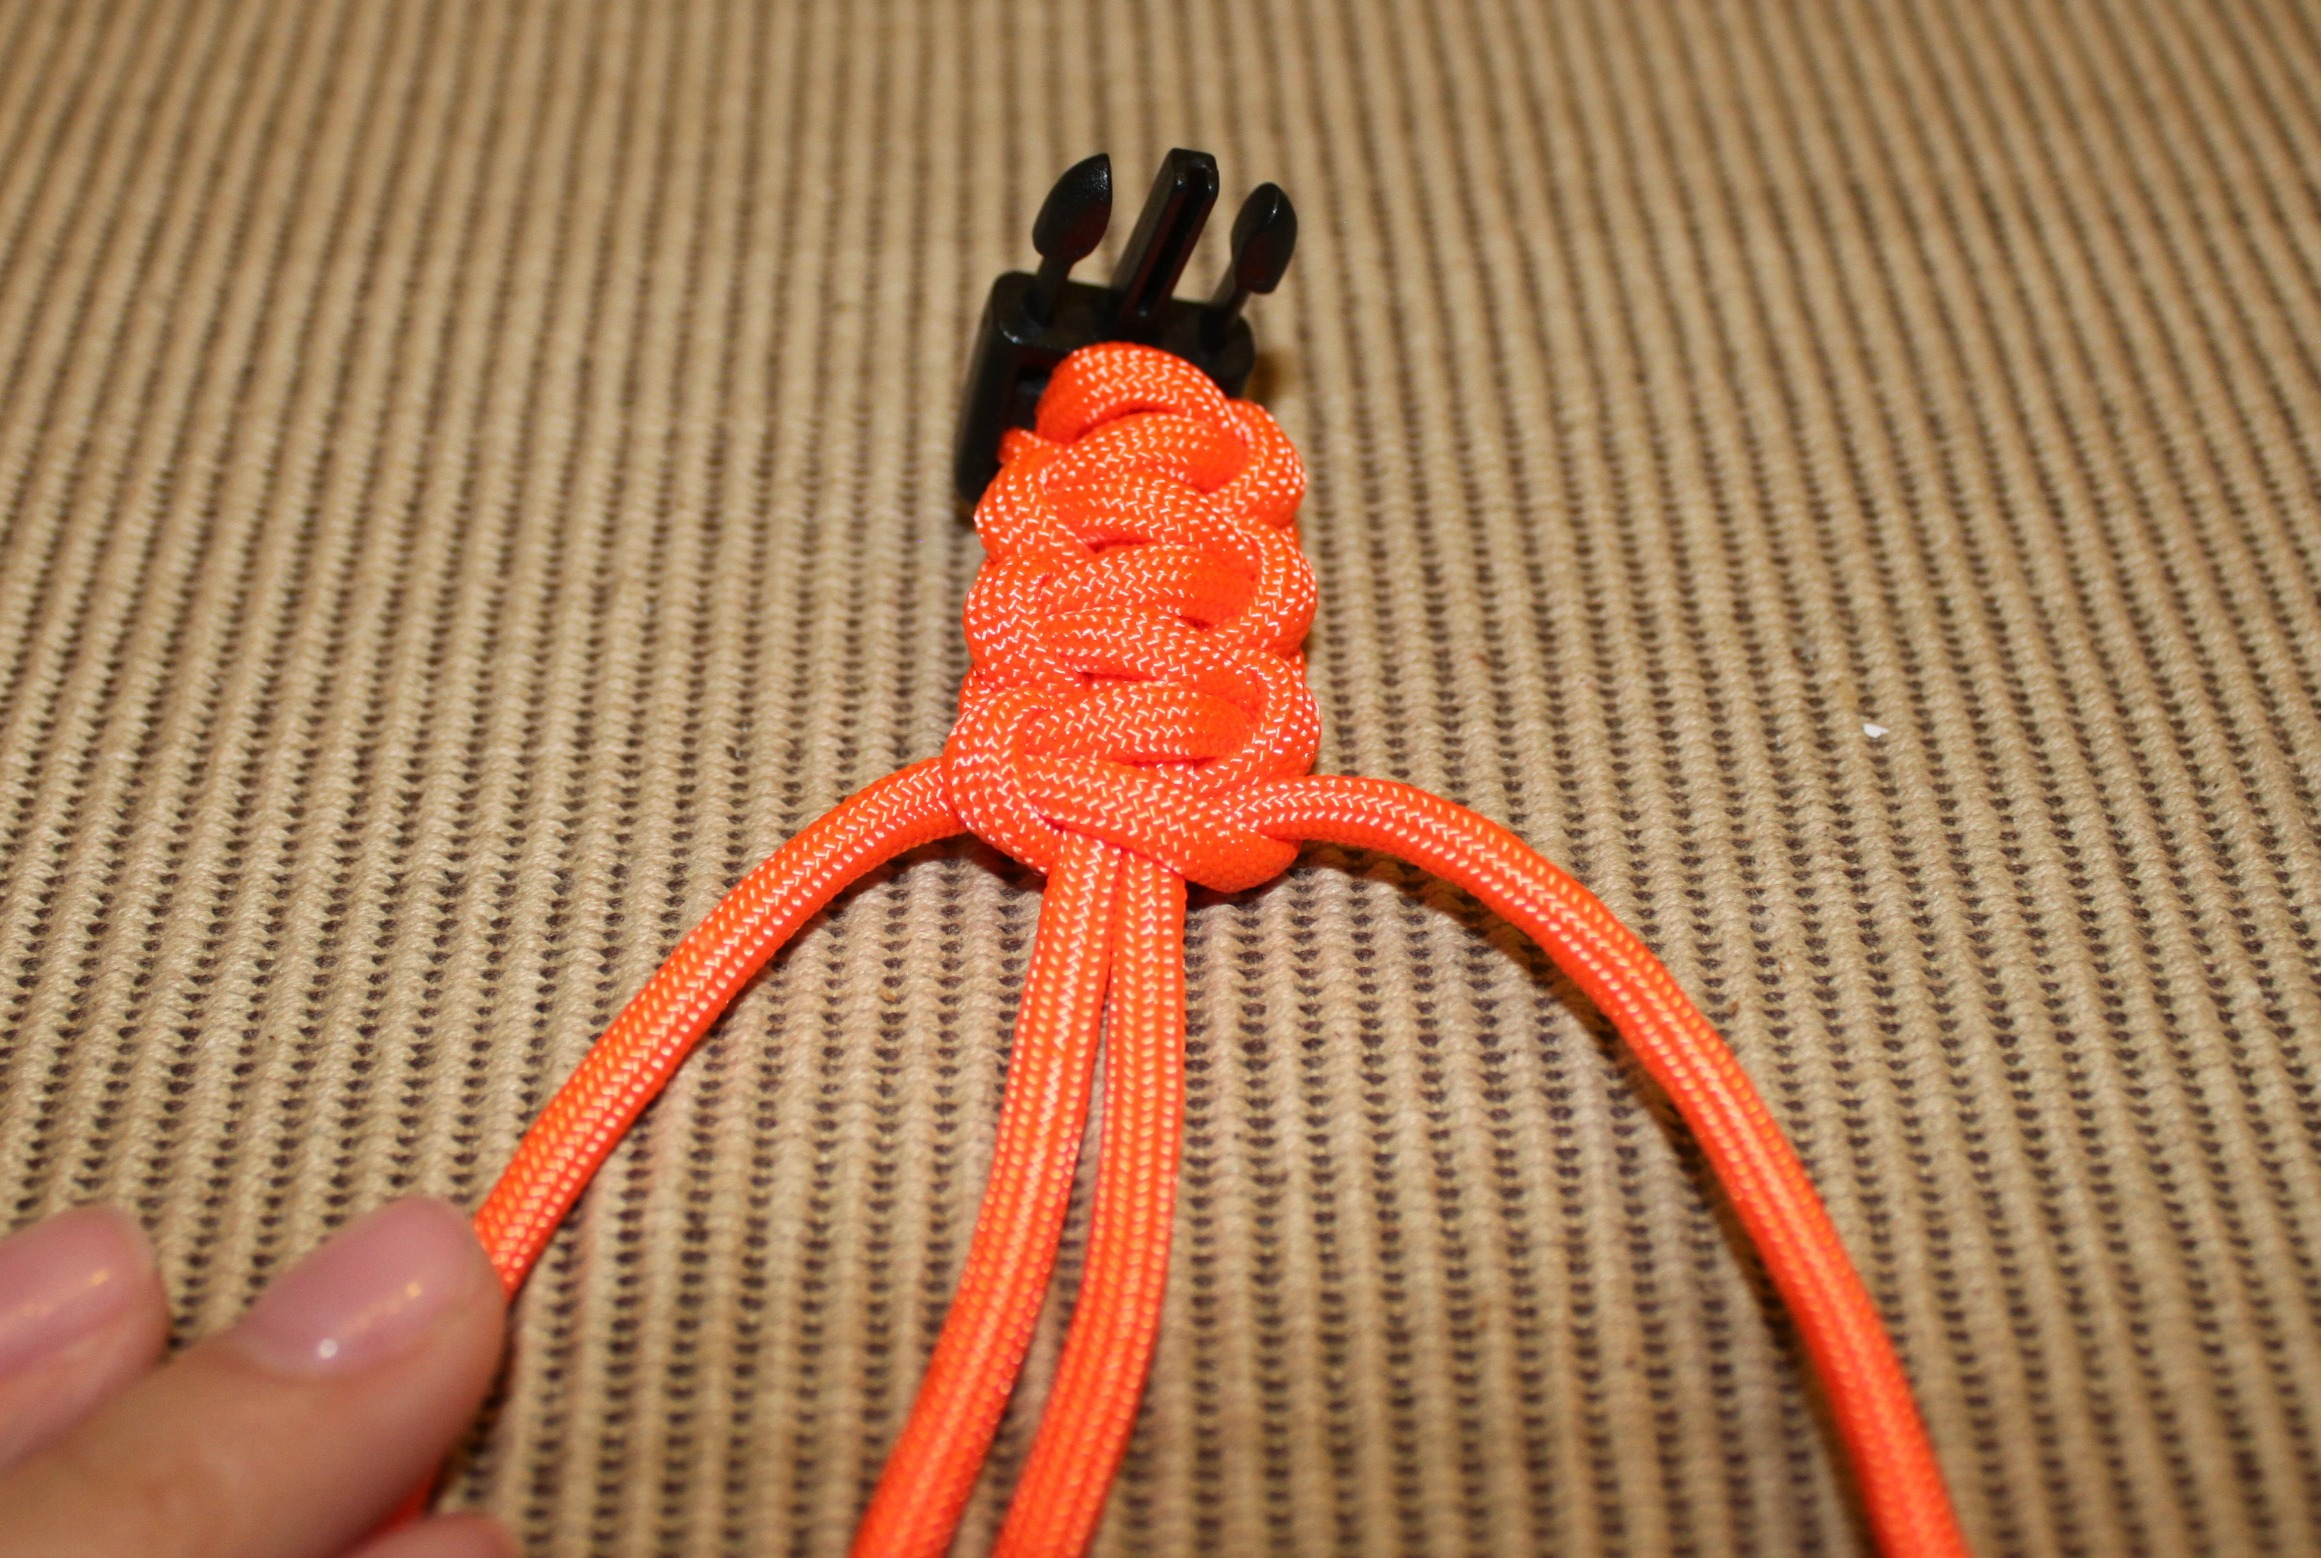 how to make a paracord bracelet step by step